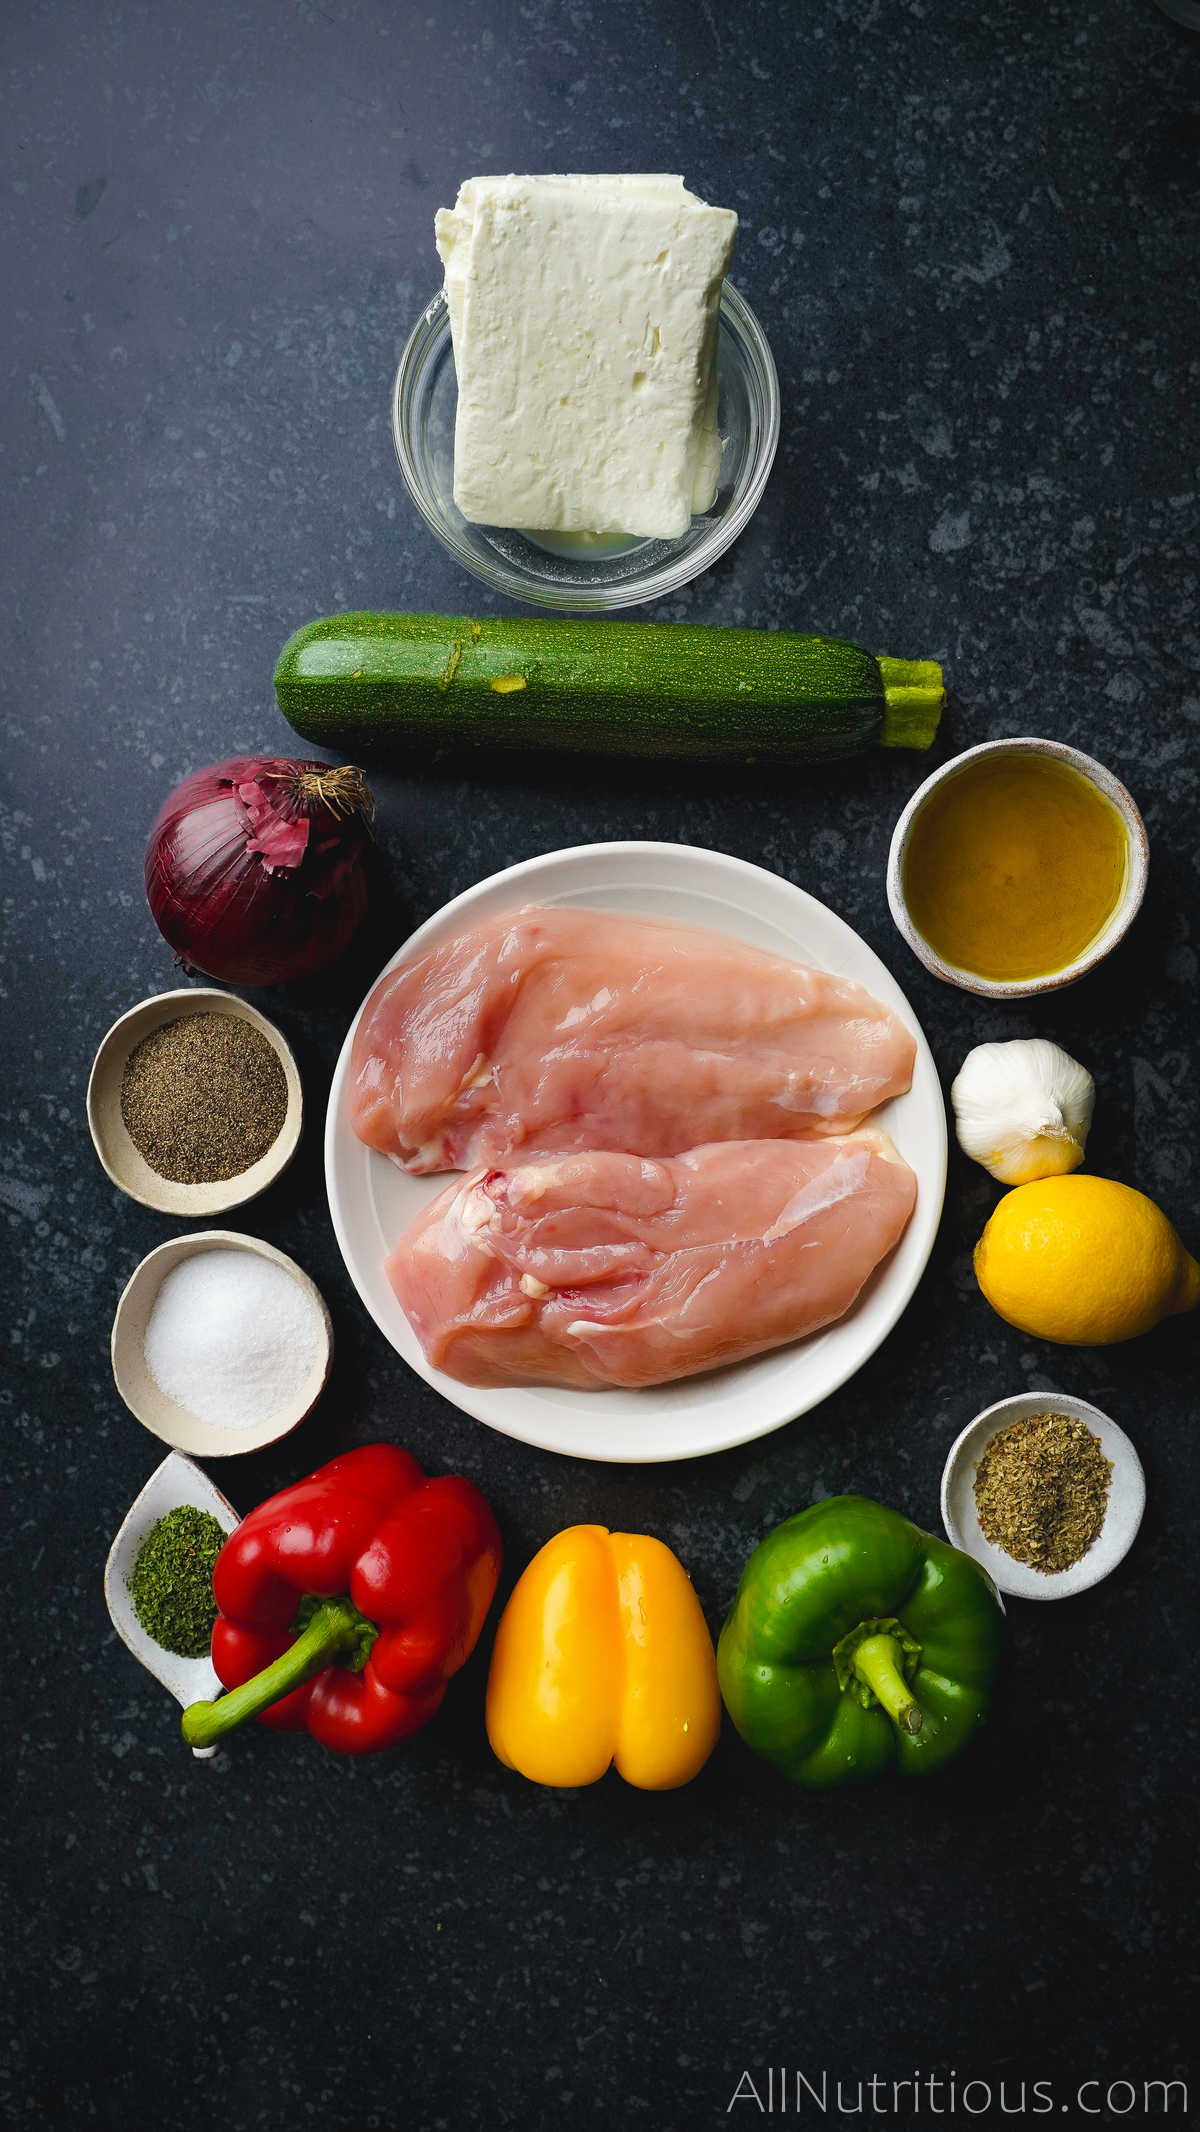 raw chicken and ingredients